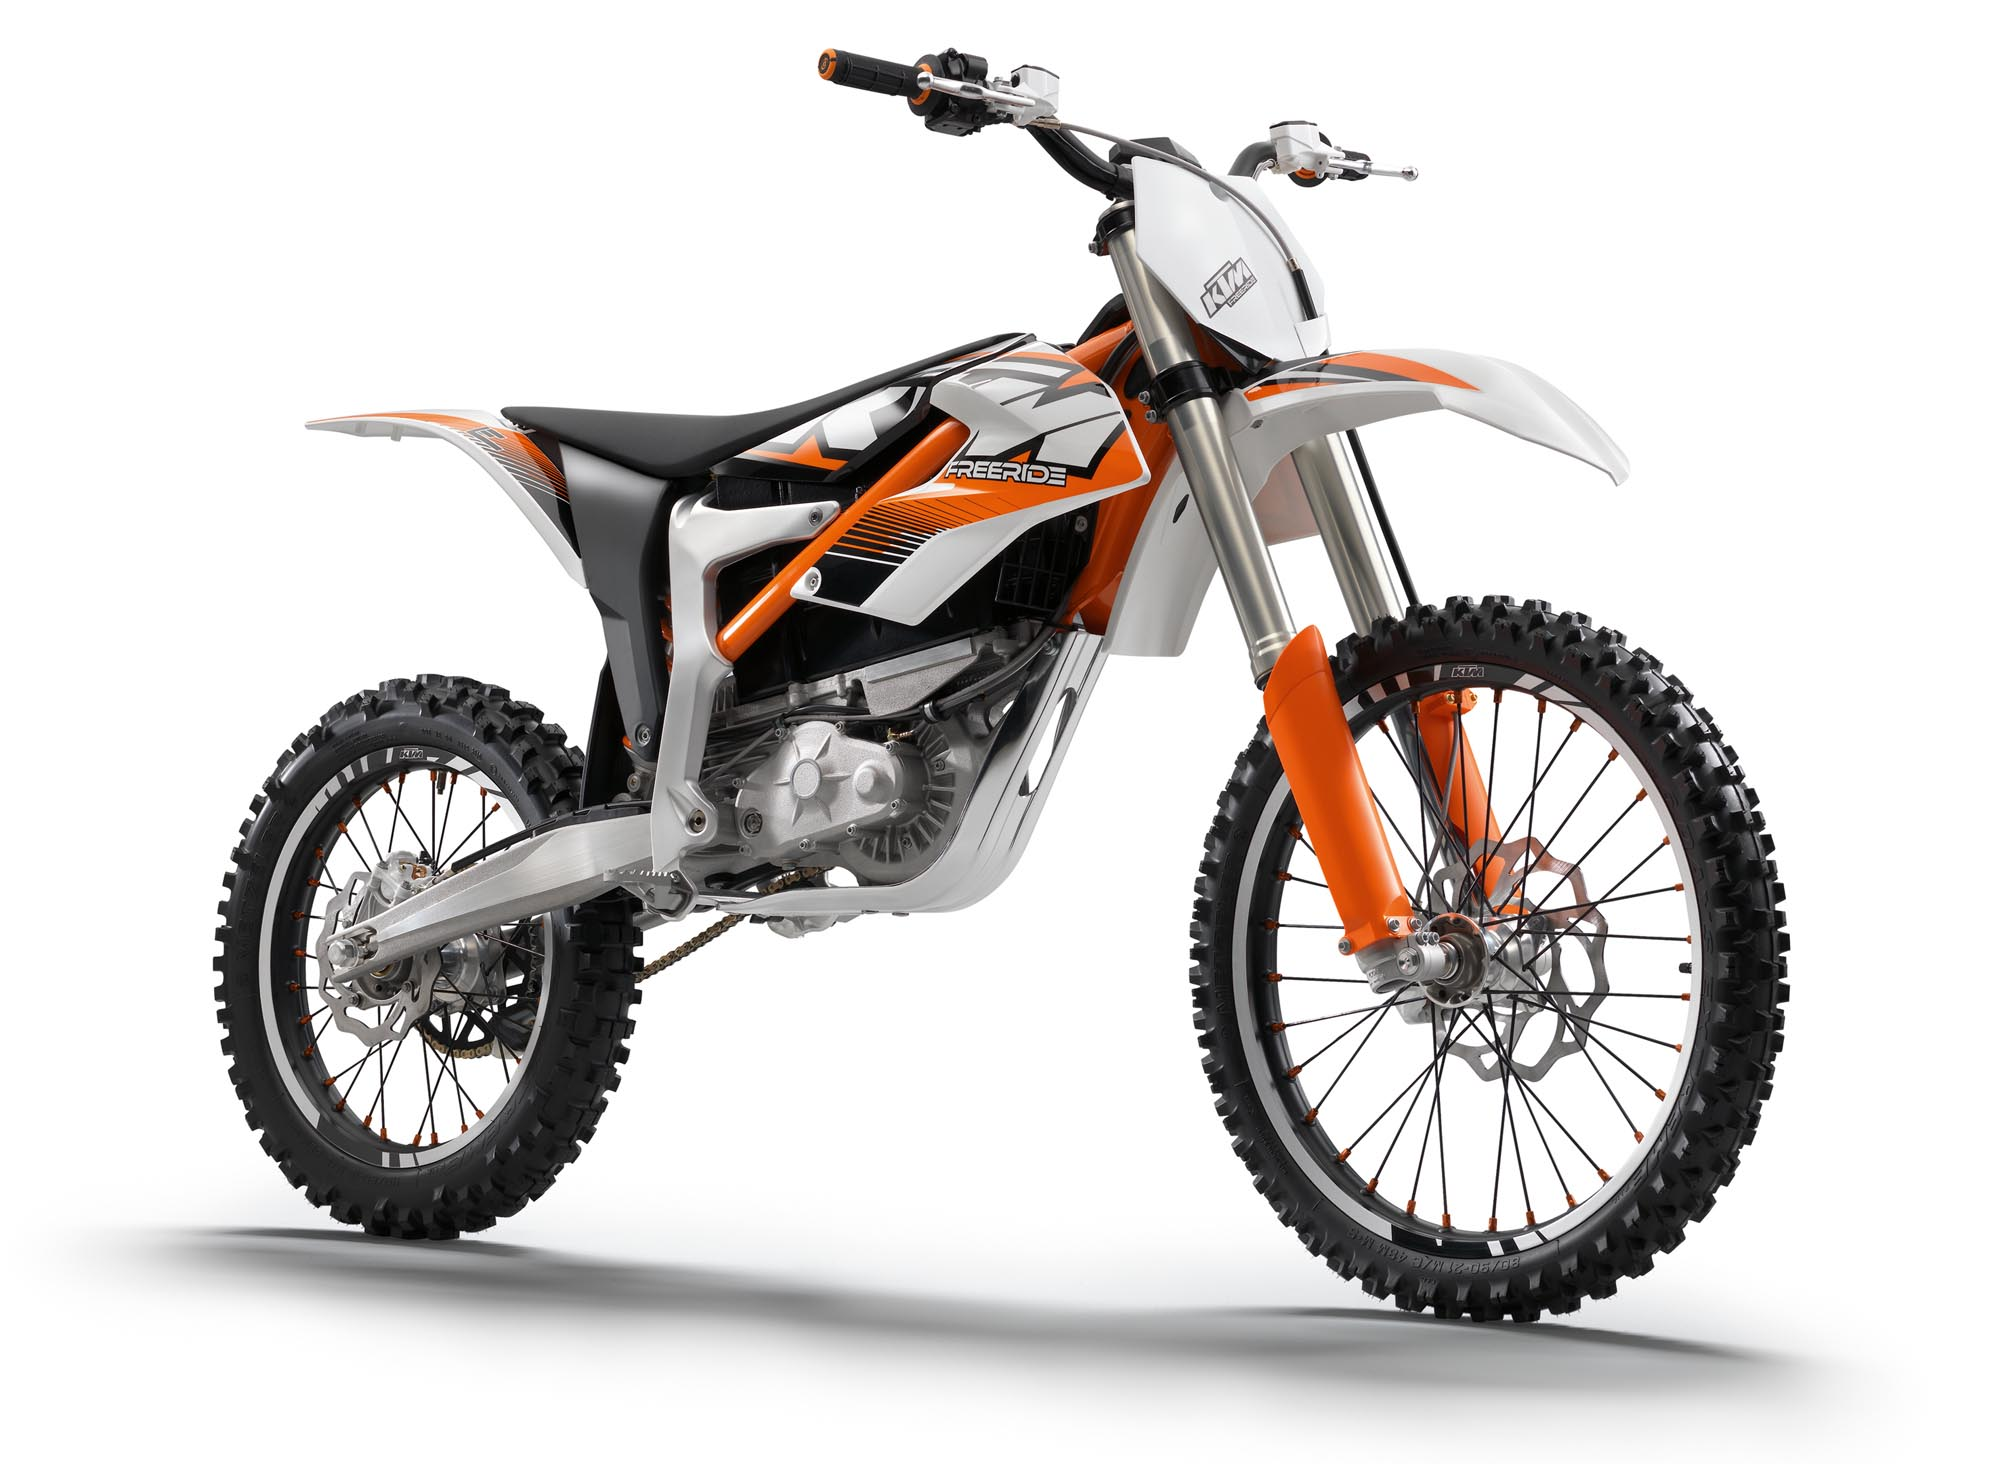 Ktm Freeride E 2018 >> KTM E-Speed Available in 2015 - KTM Freeride E in 2014 - Asphalt & Rubber